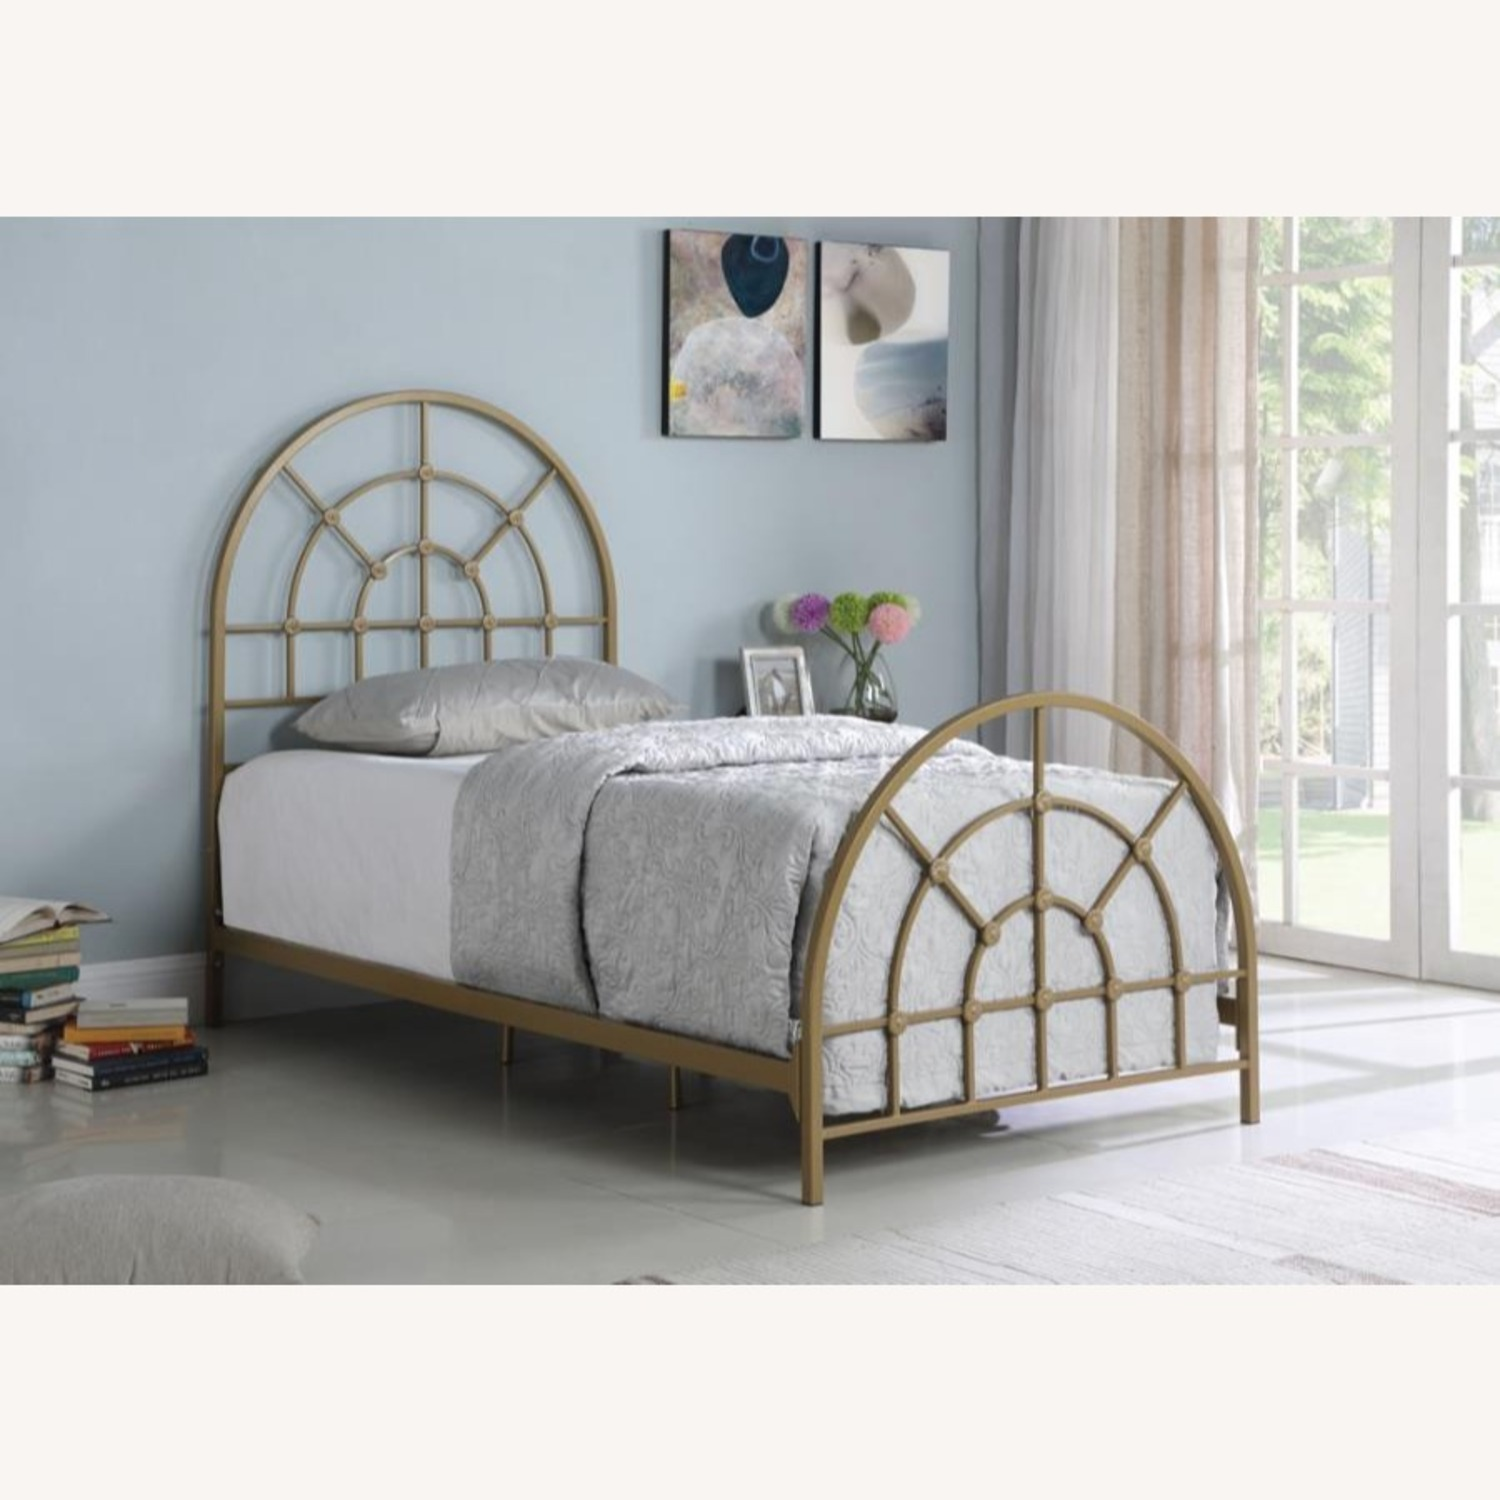 Twin Size Bed In Gold Powder Finish - image-3